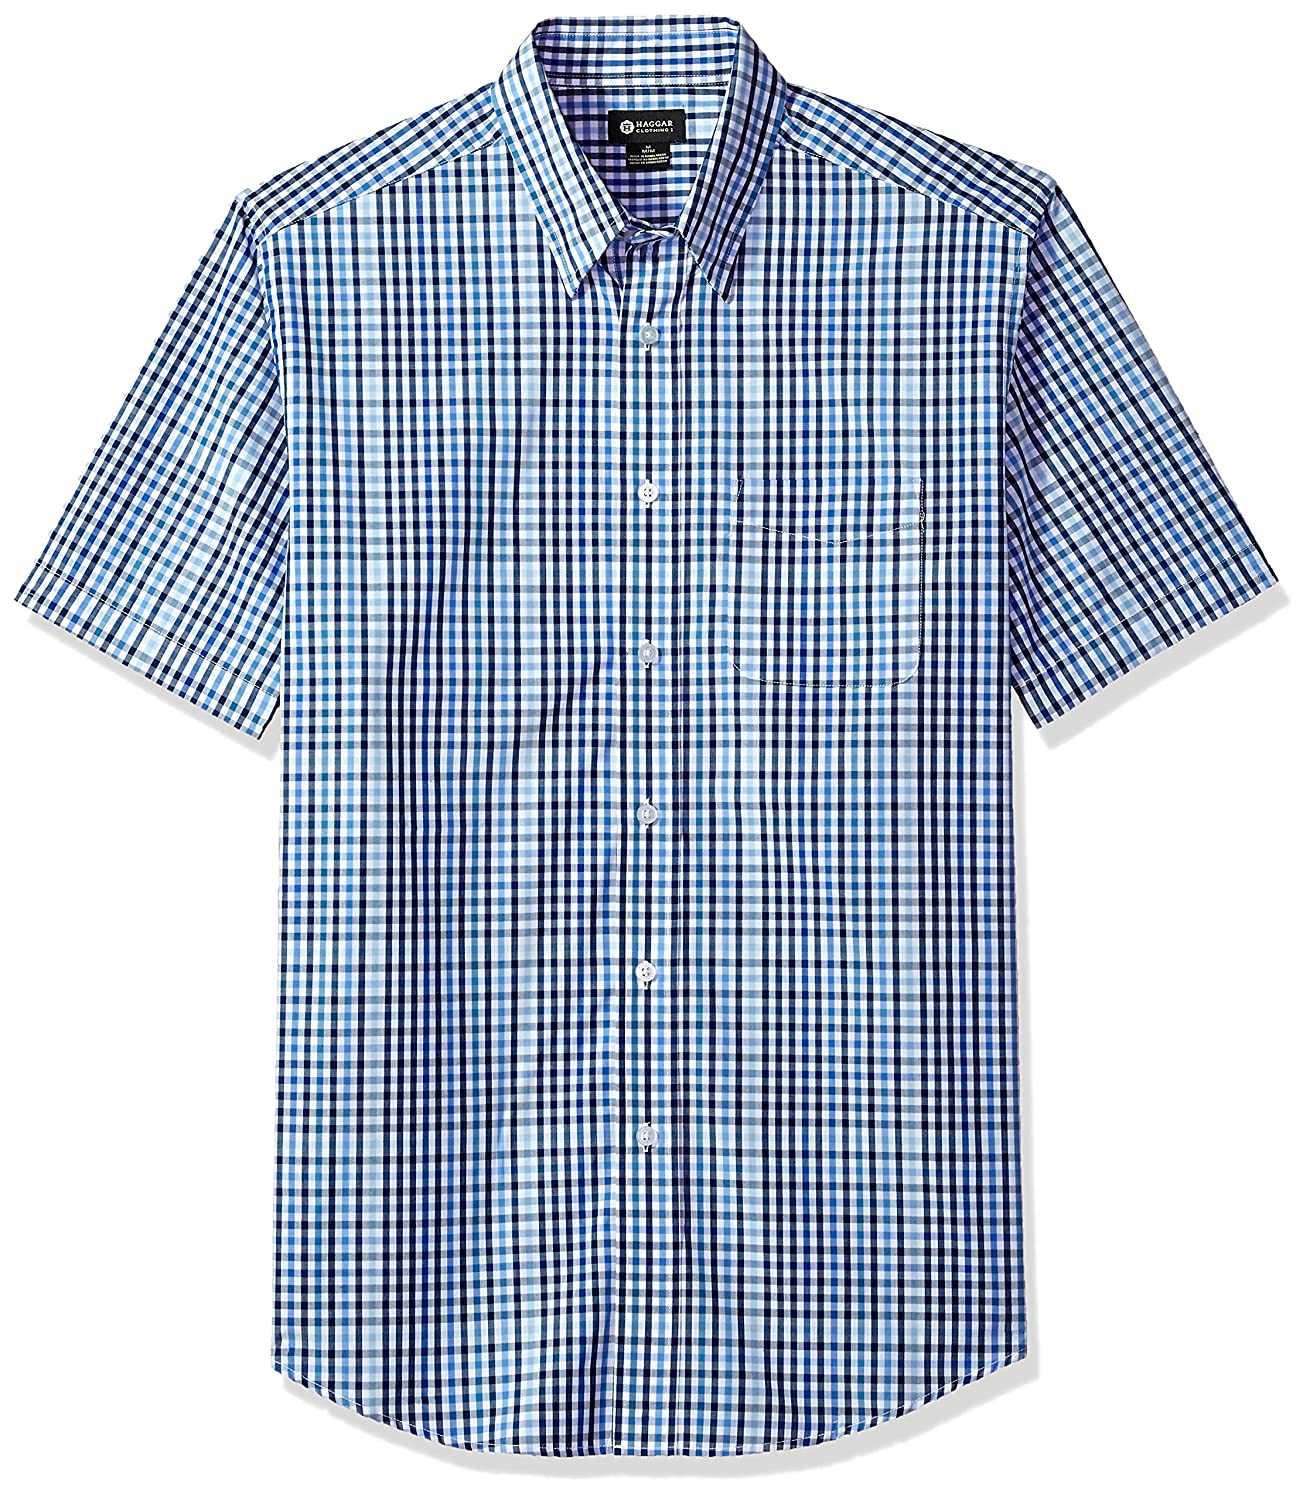 Haggar Men's Short Sleeve Gradient Plaid Shirt IWM289